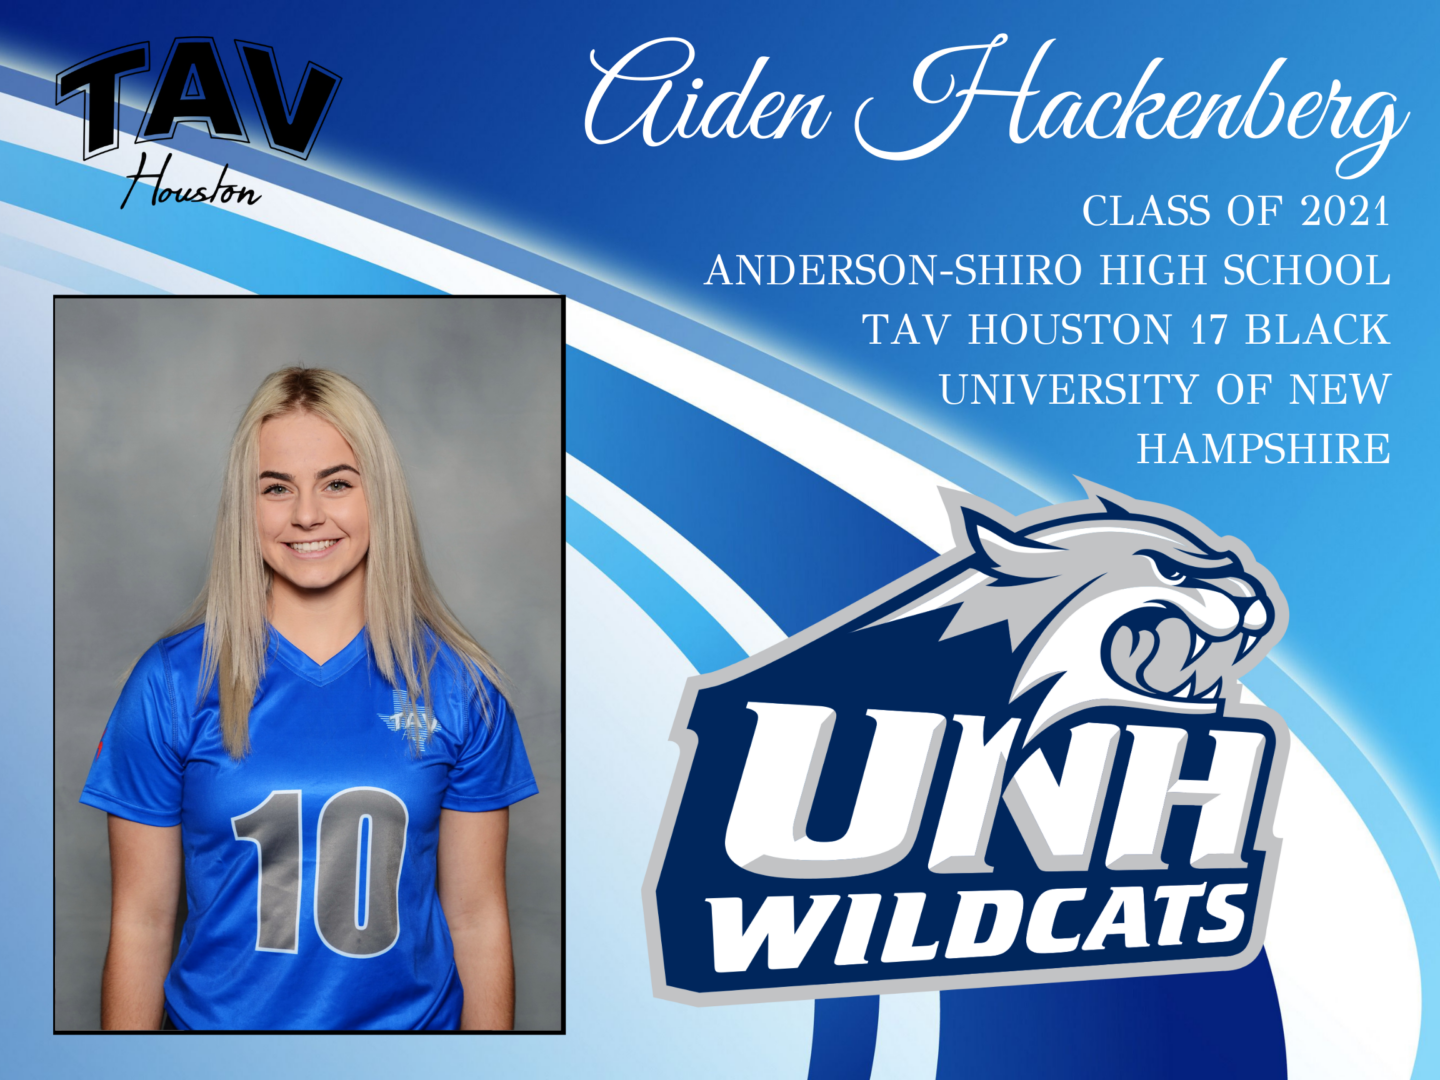 Aiden Hackenburg - Univ. of New Hampshire